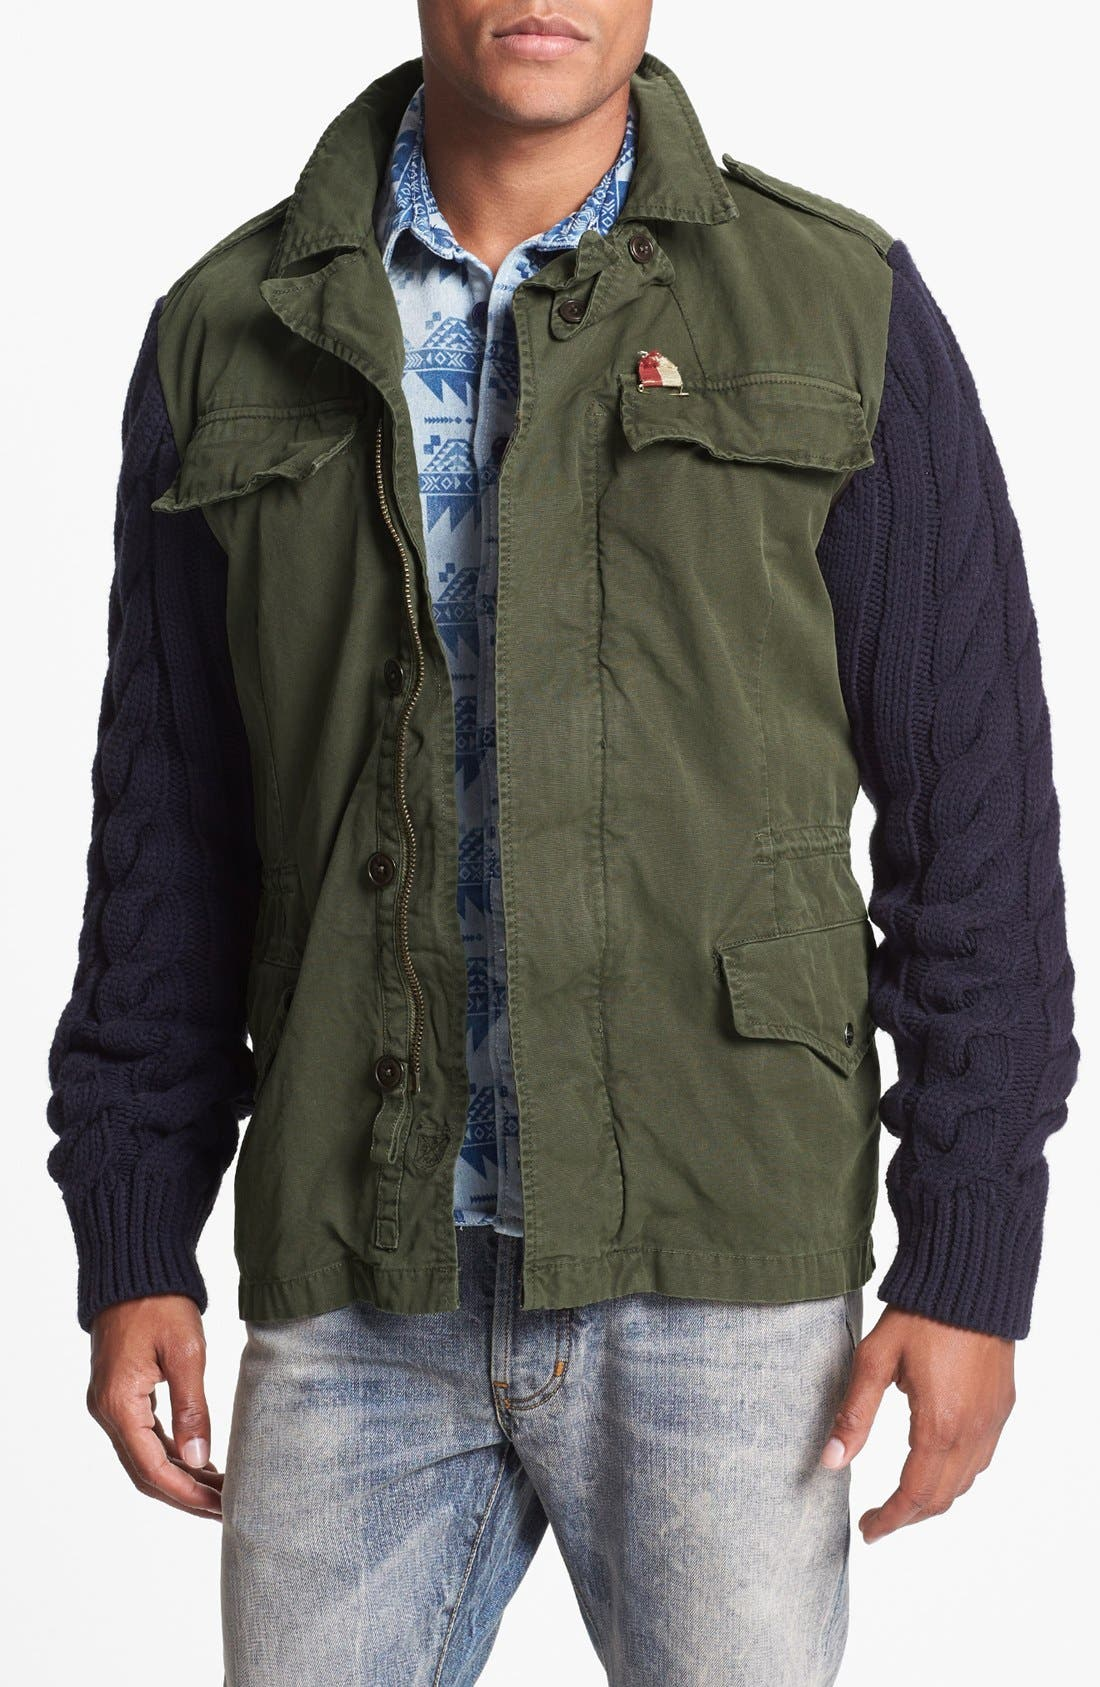 Main Image - Scotch & Soda Military Jacket with Knit Sleeves